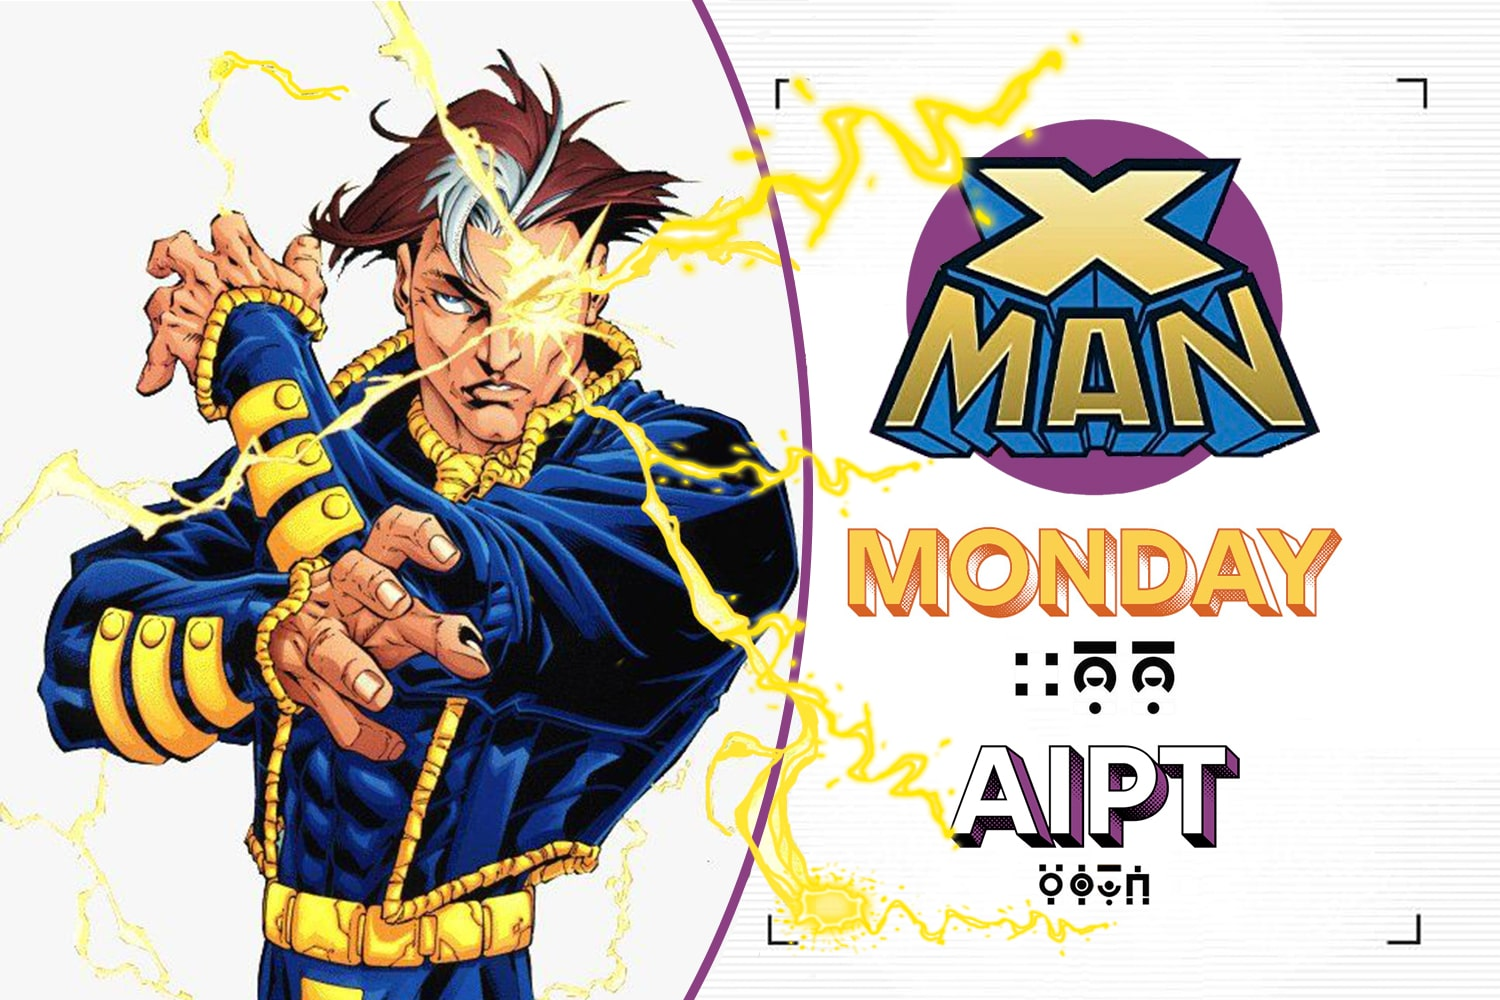 X-Men Monday #56 - X-Man Monday with Lonnie Nadler and Zac Thompson